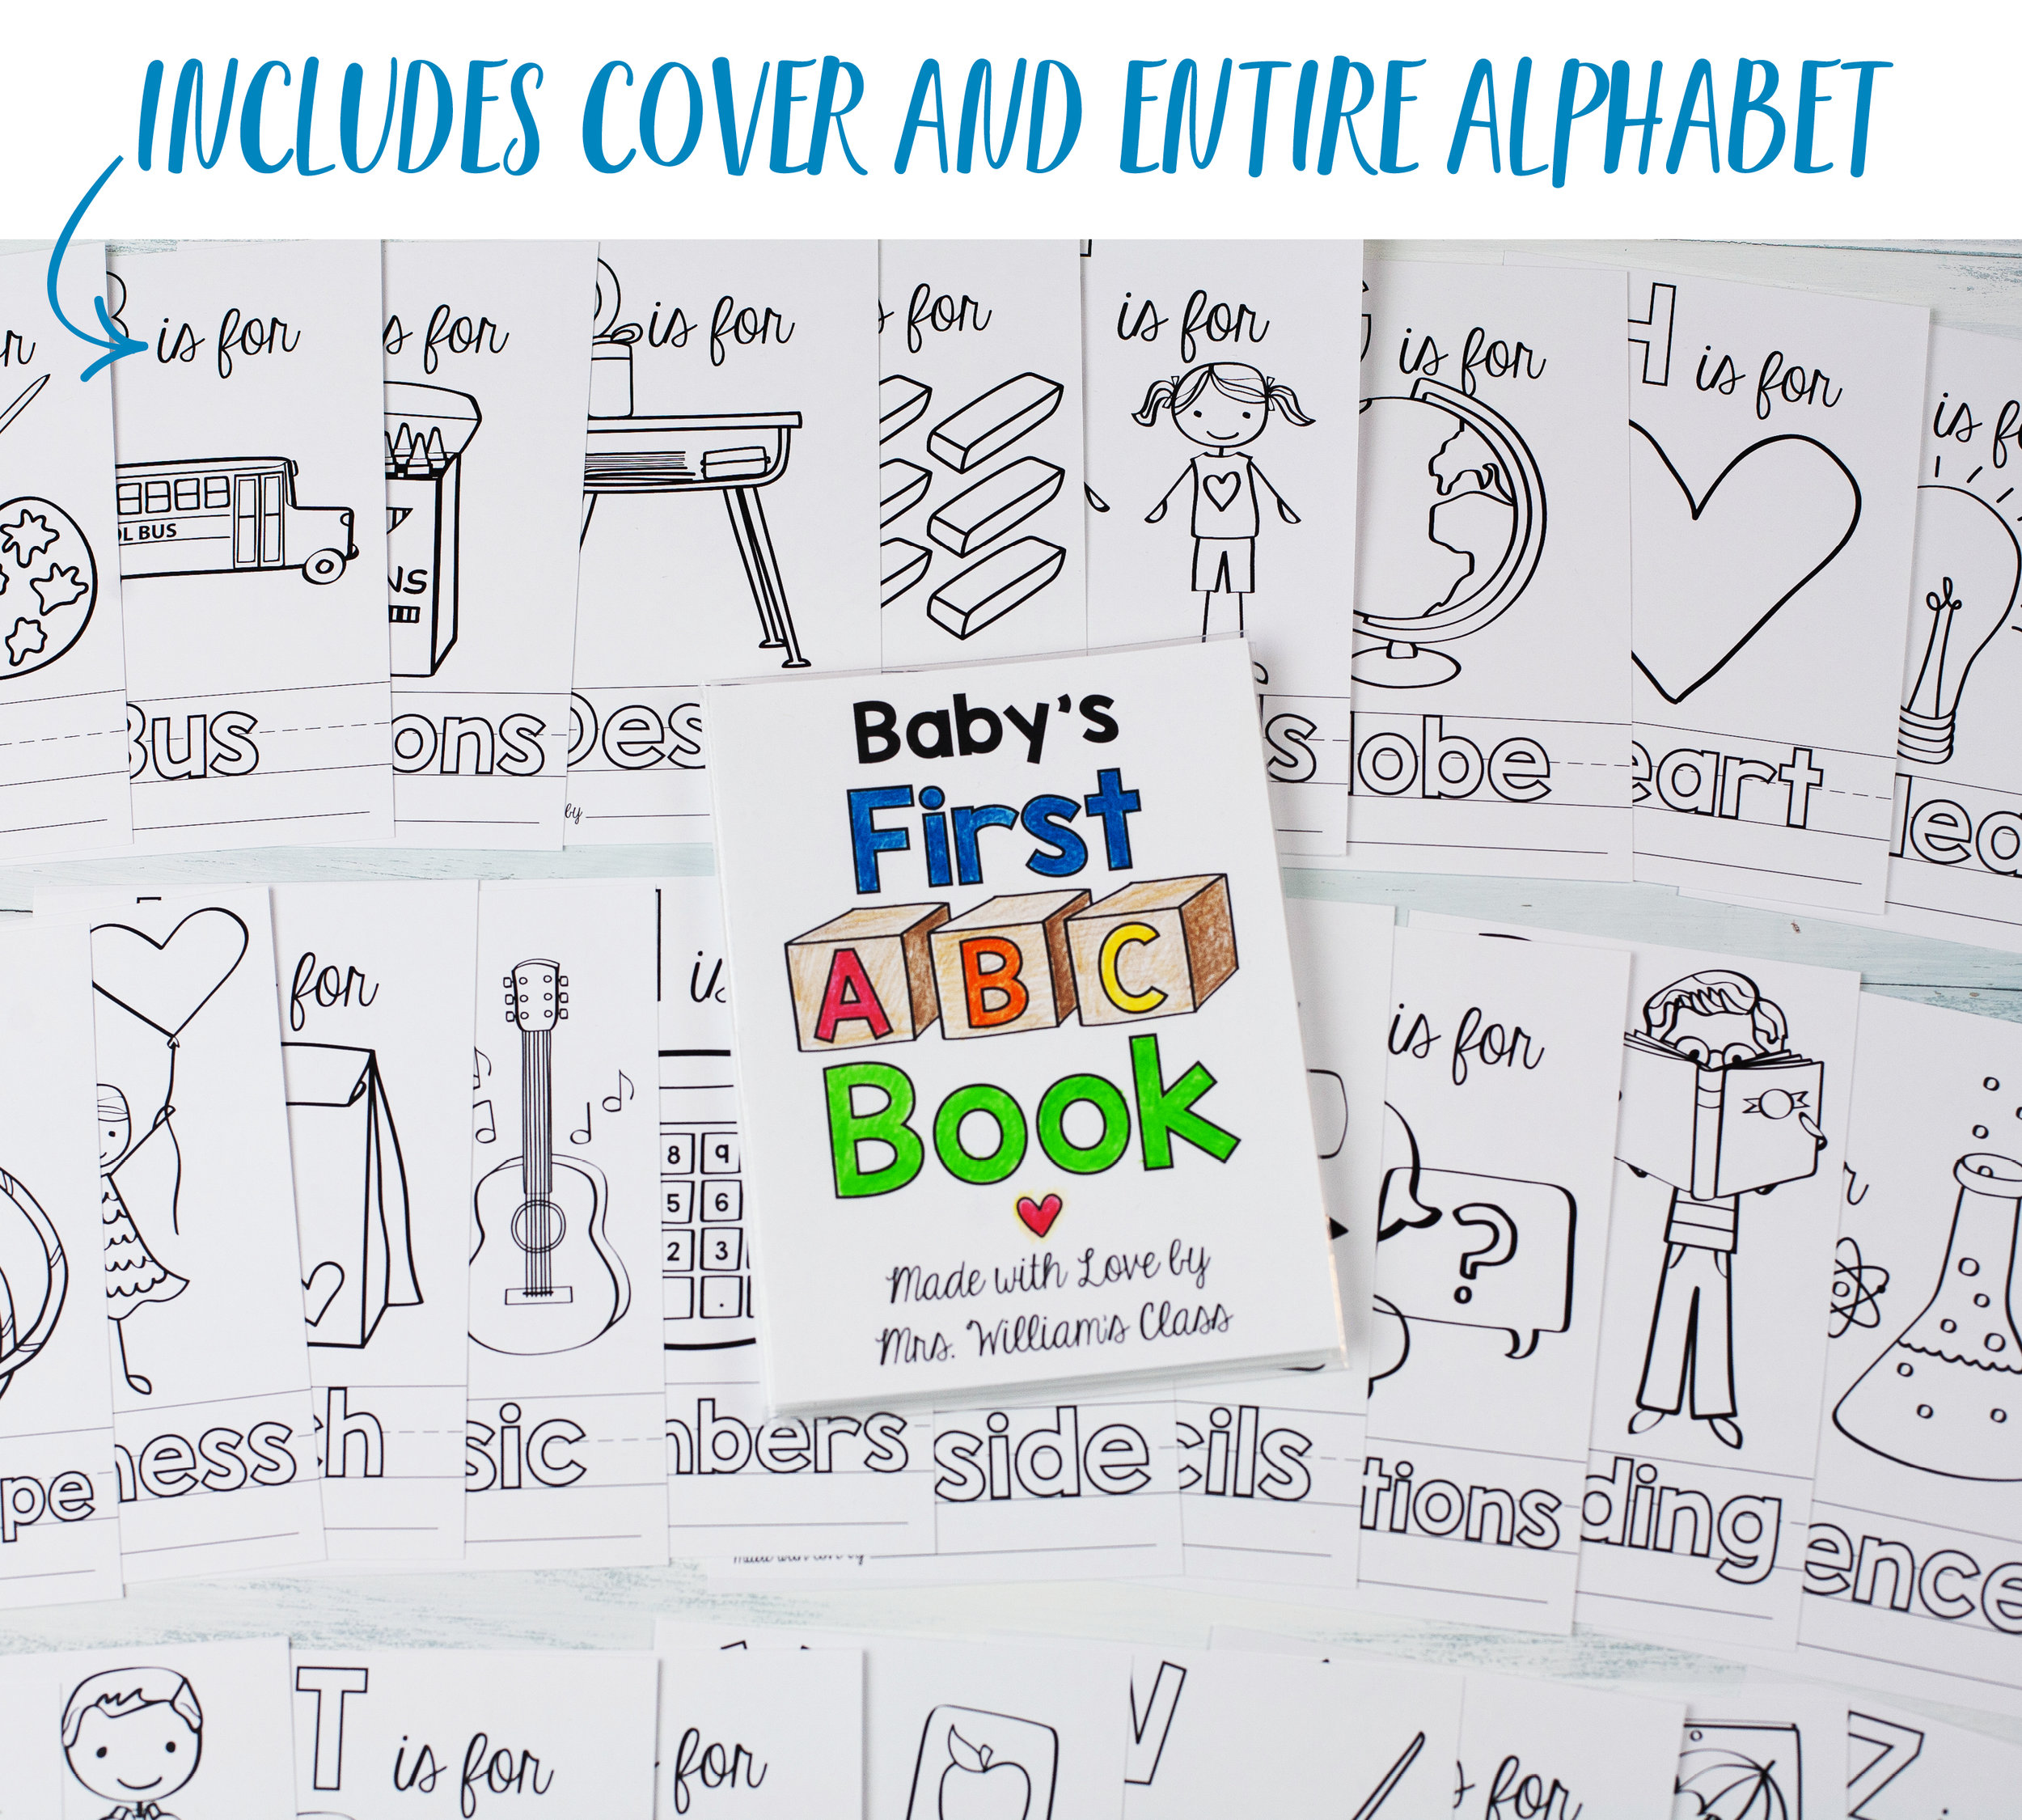 picture regarding Alphabet Book Printable titled Faculty Concept ABC E-book Printable PDF Obtain 4x6\